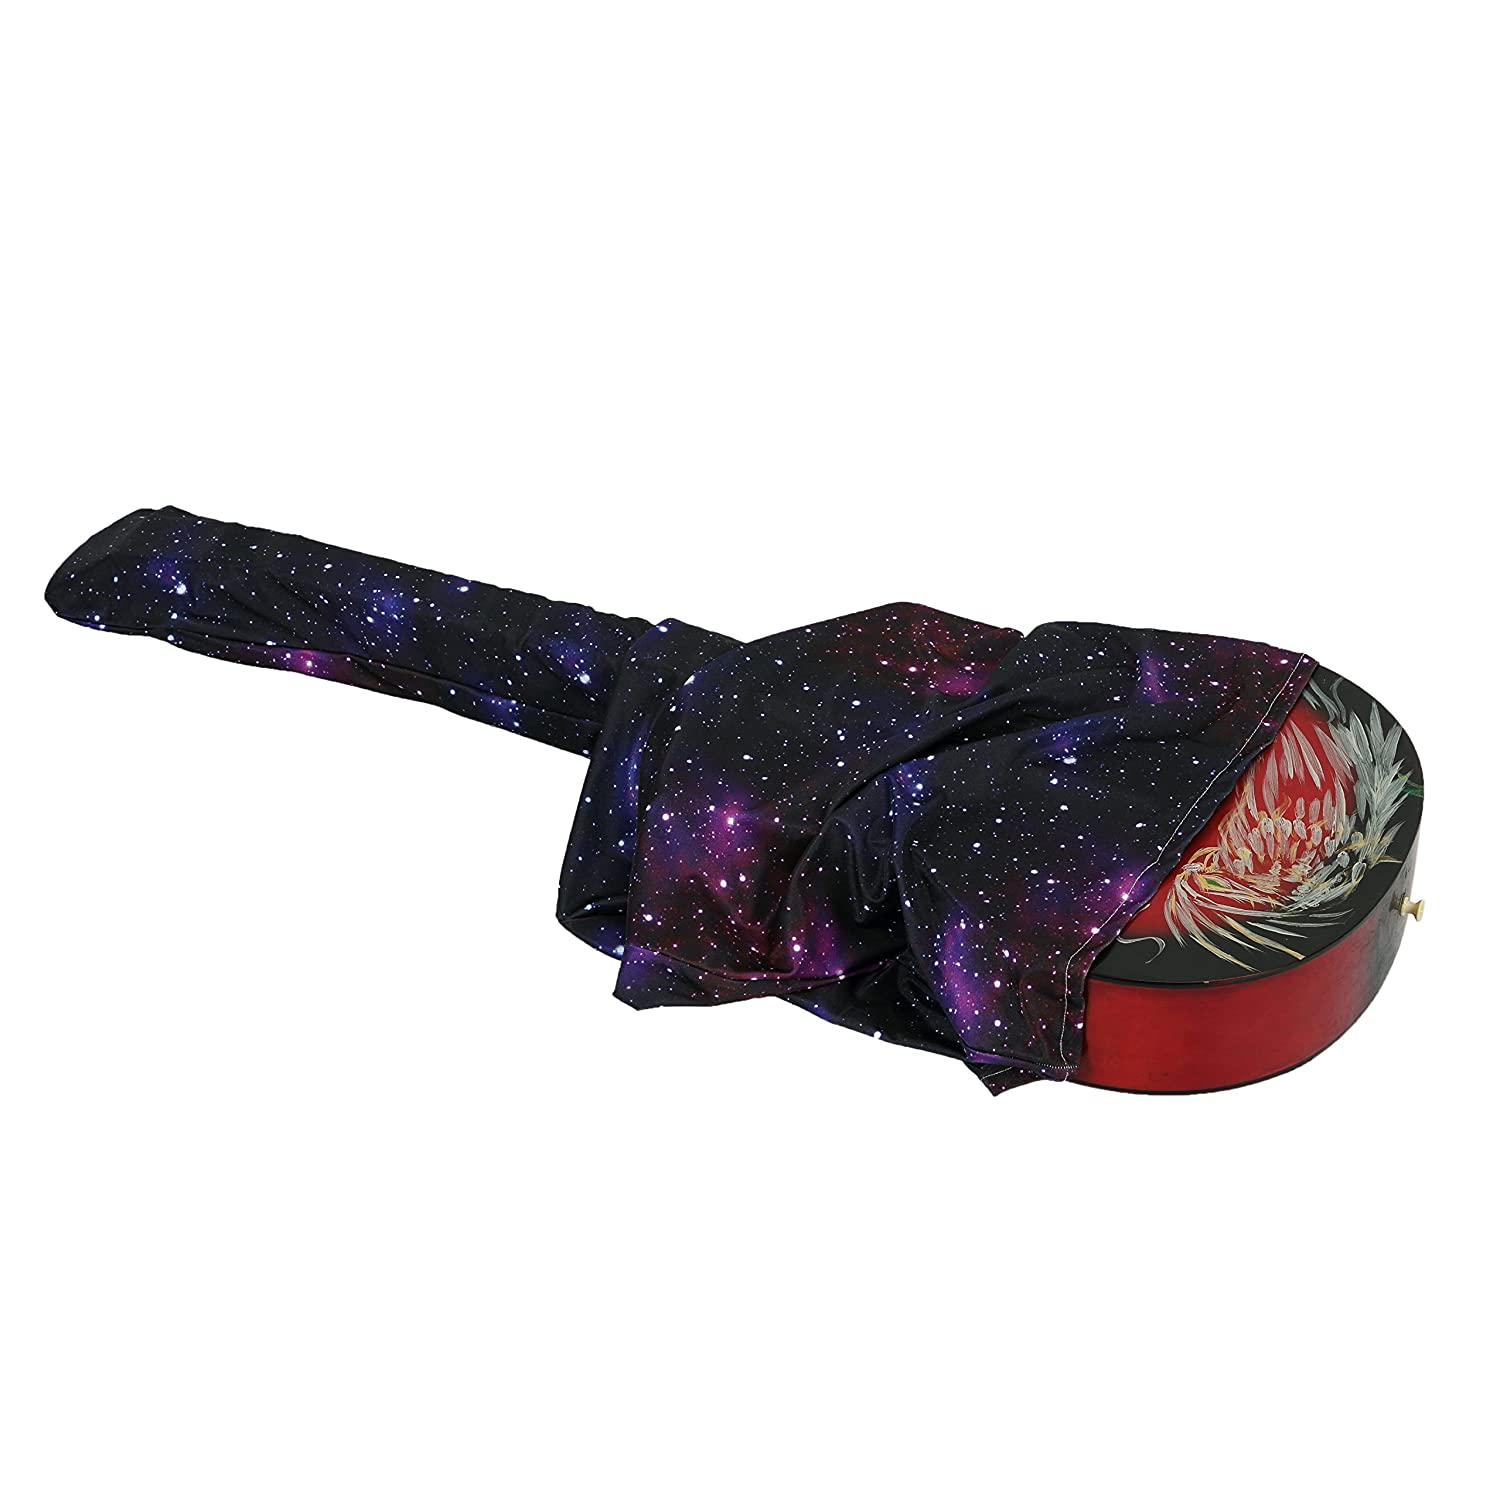 41 INCH Guitar Cover Adjustable Durable Soft Polyester Cloth Acoustic Electric Guitar Dust Cover Purple Star Space Pattern Guitar Gig Bag JT02 ZhuoLang